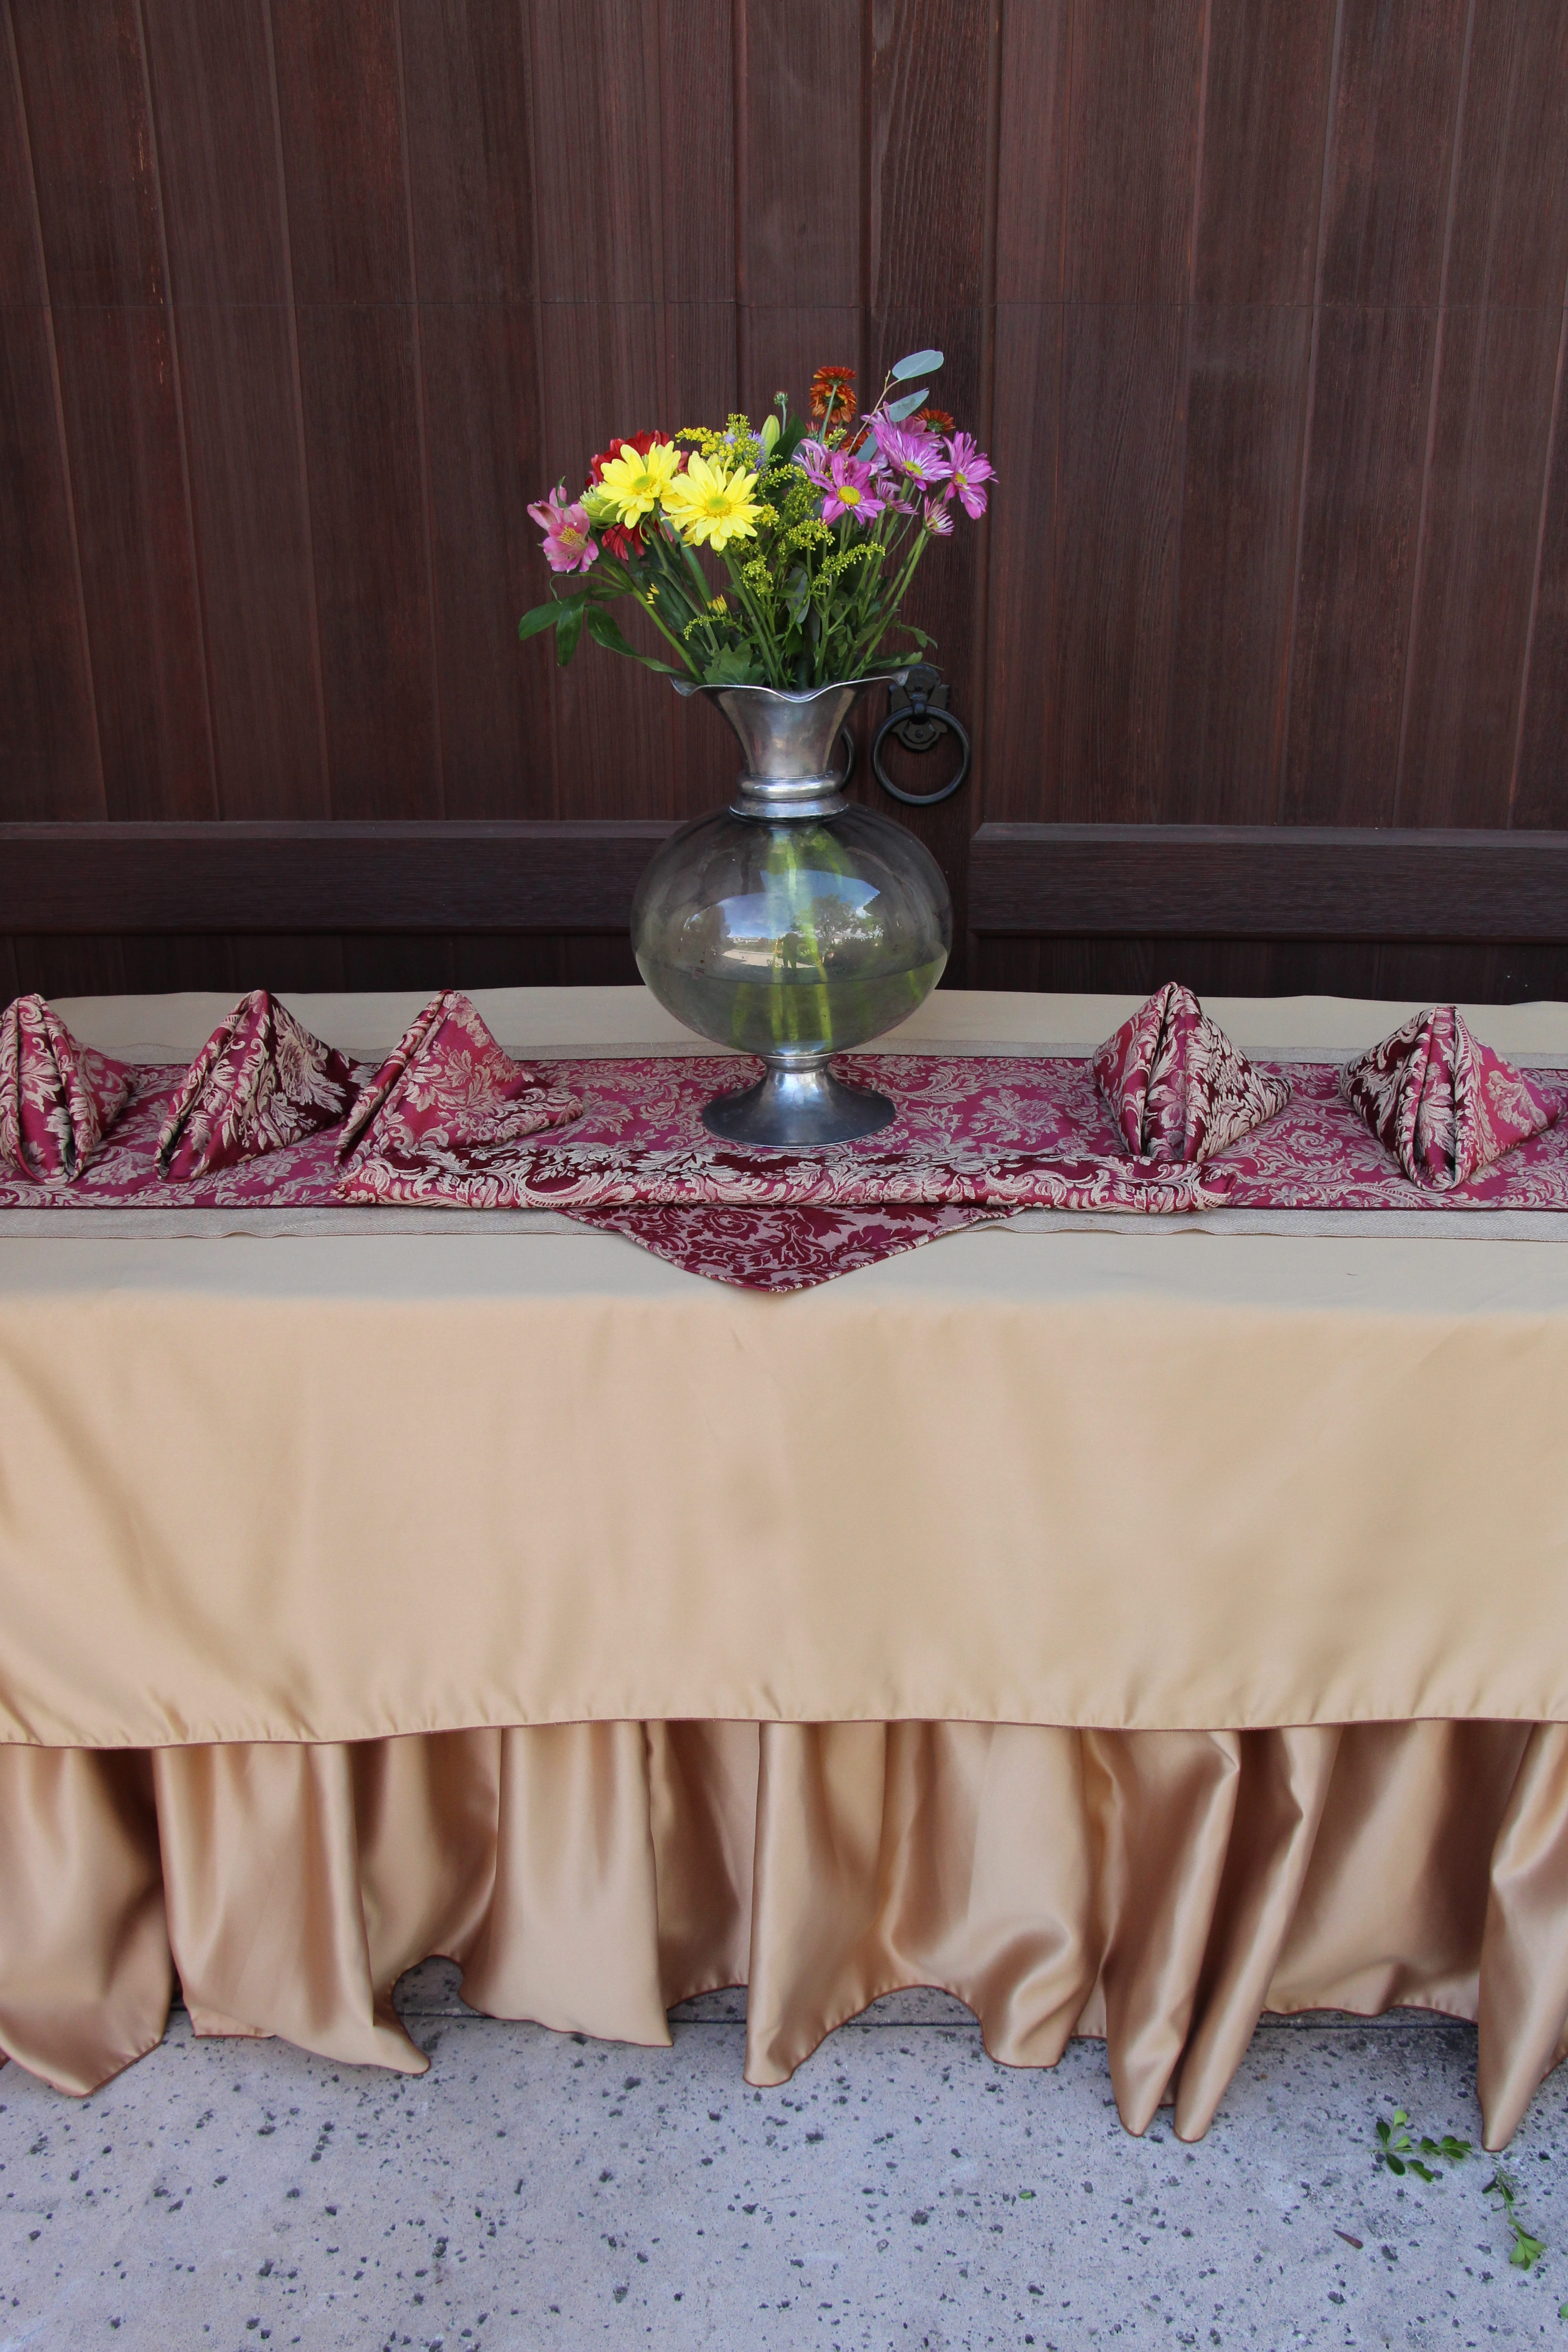 By Using The Wider Natural Jute Table Runner On The Bottom, And Choosing A  Narrow Runner On Top, It Allows For A Variety Of Possible Table Runner  Decorating ...